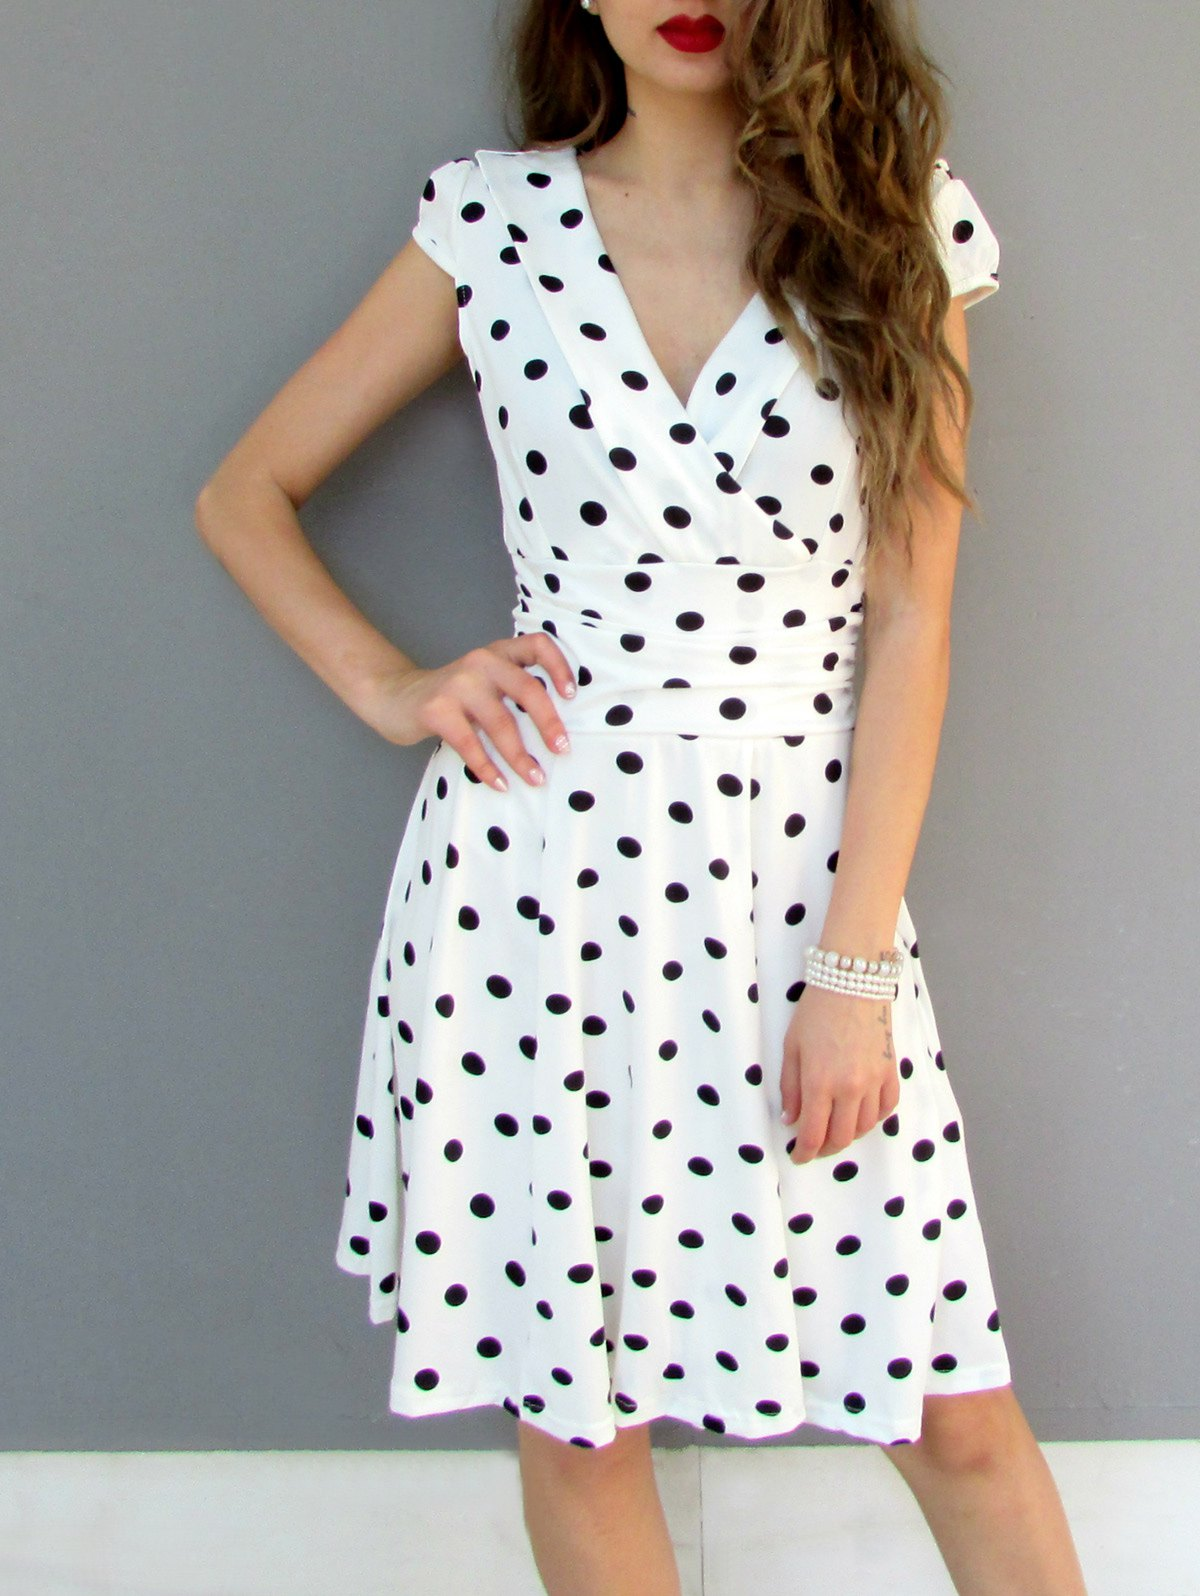 Stylish Short Sleeve V-Neck Polka Dot Dress For Women